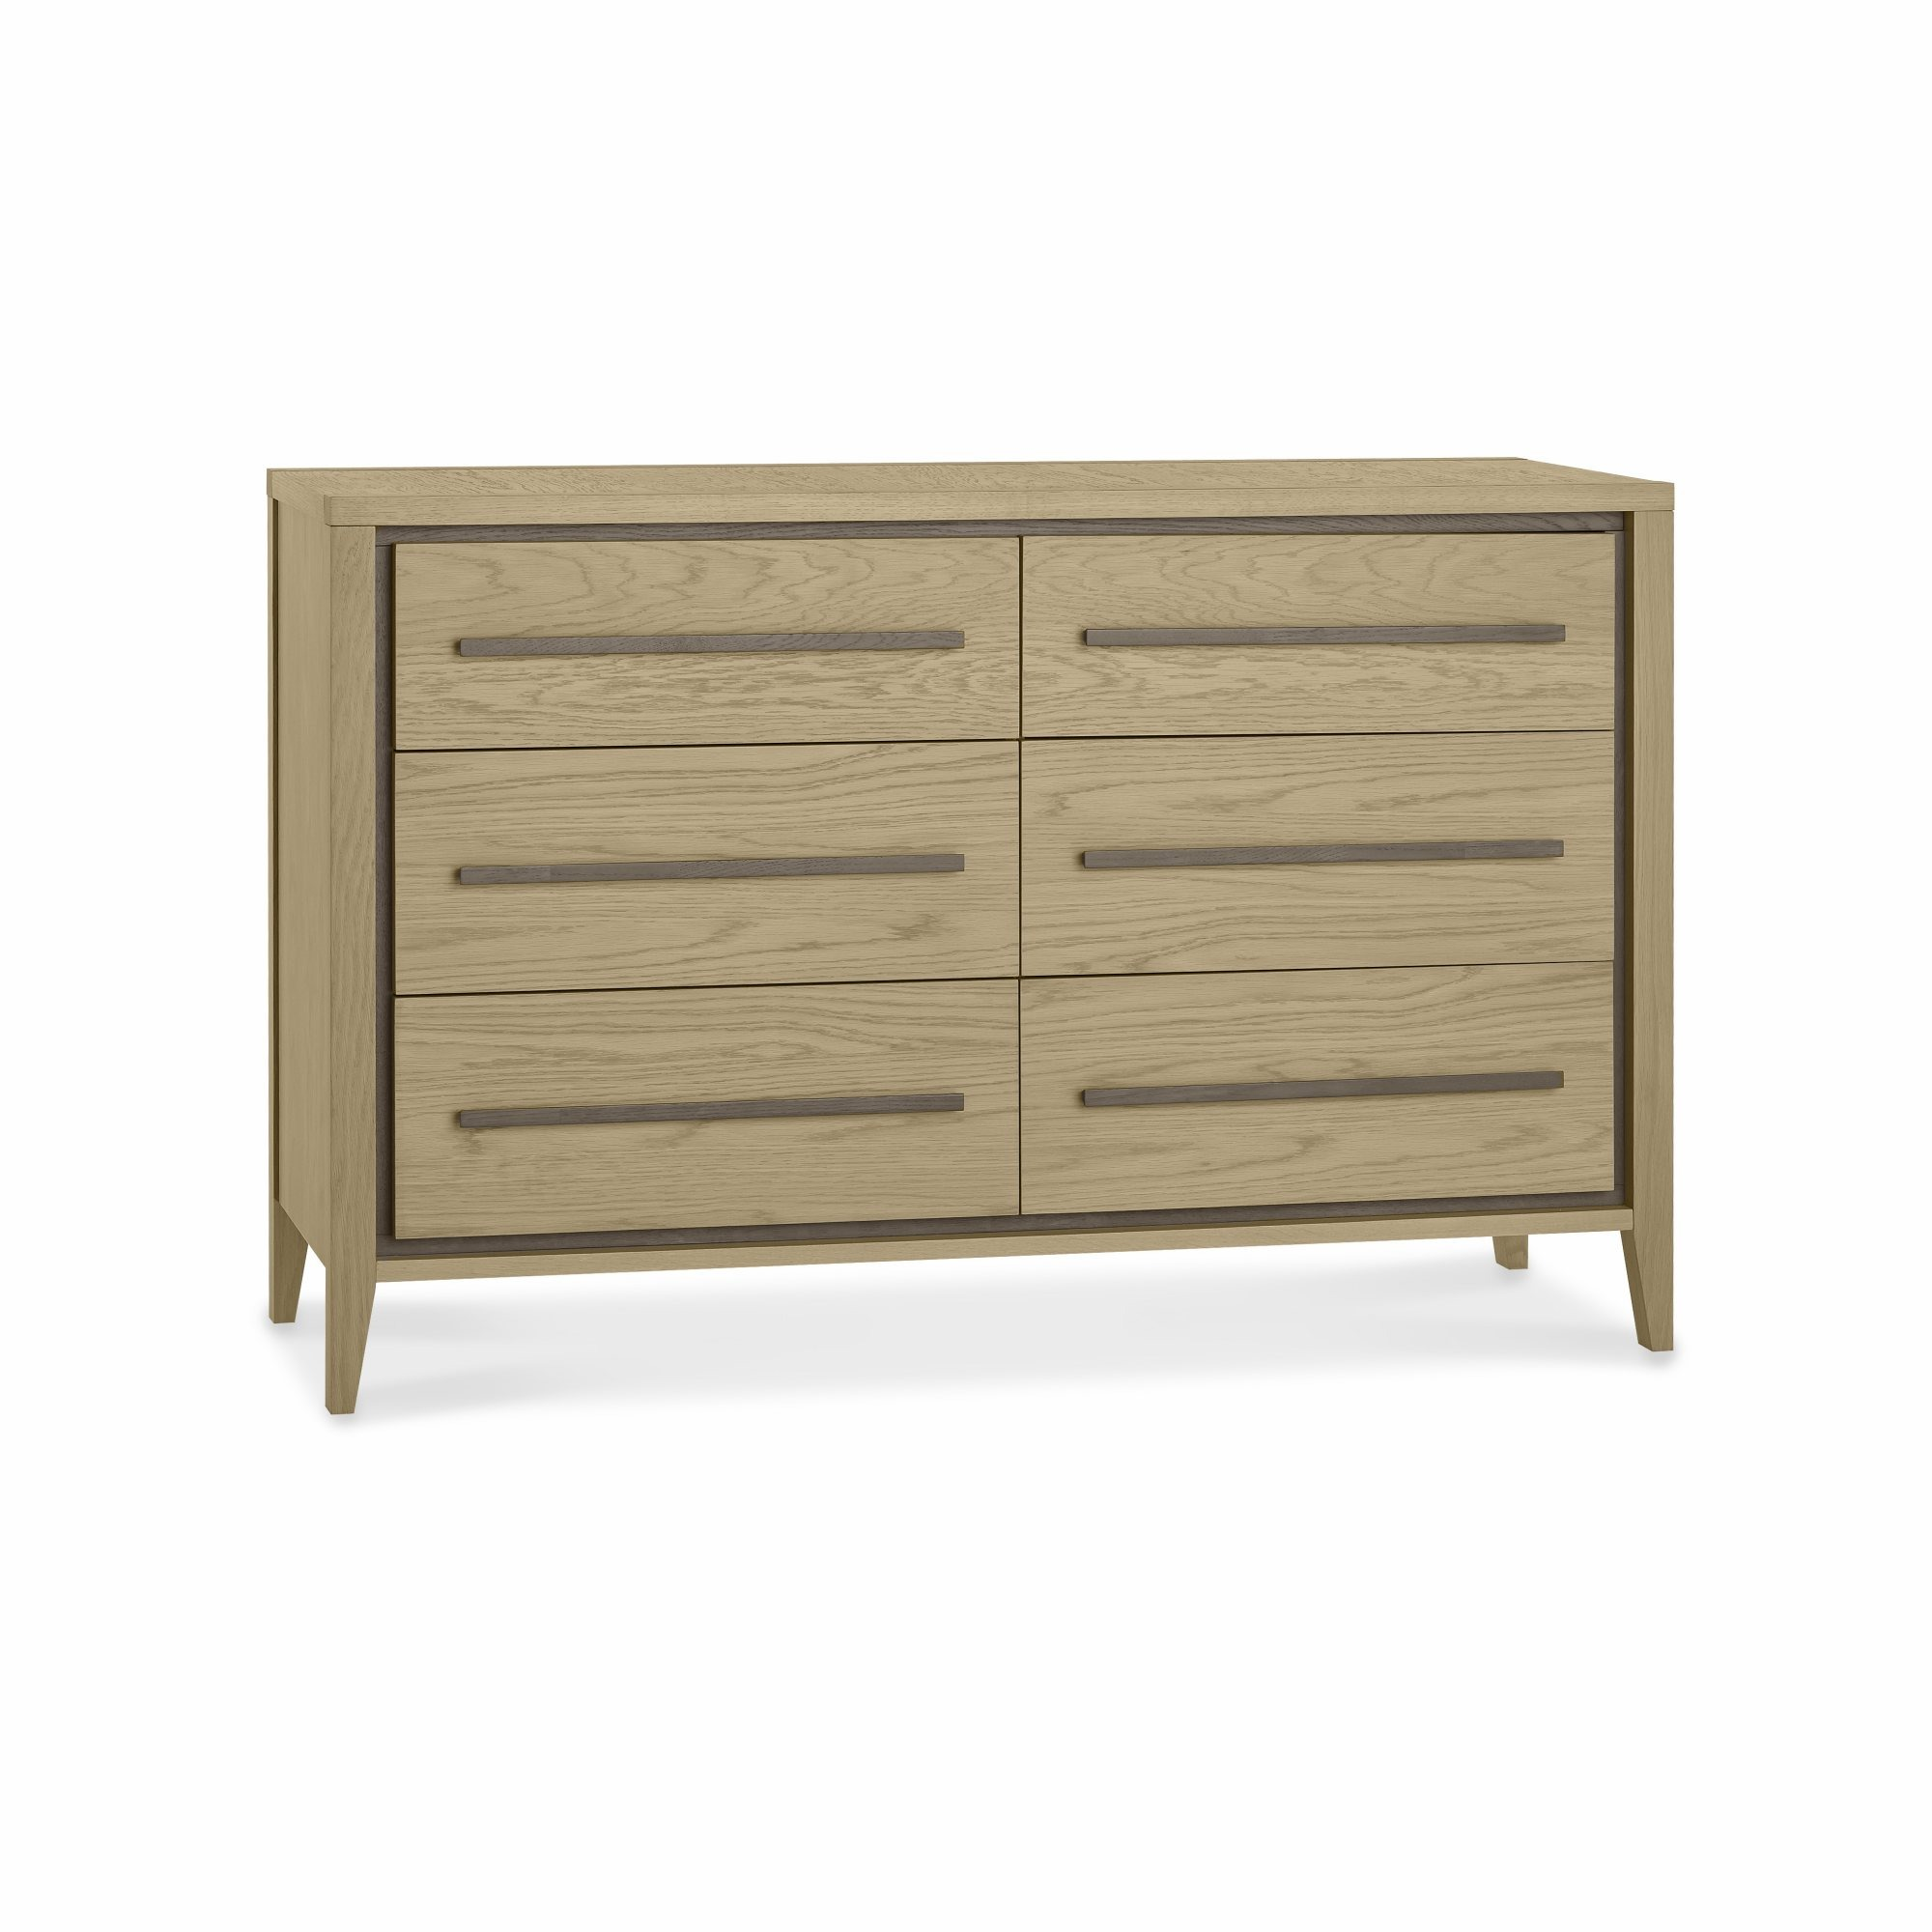 CARELL WIDE CHEST - L125cm x D45cm x H84cm